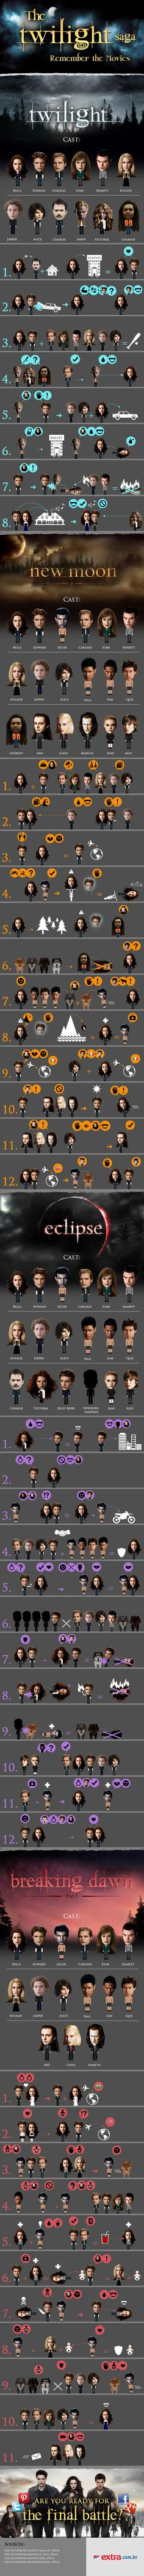 Excited for the closure of the Twilight Saga? Remember the scenes of Twilight, New Moon, Eclipse and Breaking Dawn Part Twilight Film, Twilight Saga Quotes, Funny Twilight, The Twilight Saga Eclipse, Twilight Cast, Robert Pattinson Twilight, Twilight Pictures, Edward Cullen, Breaking Dawn